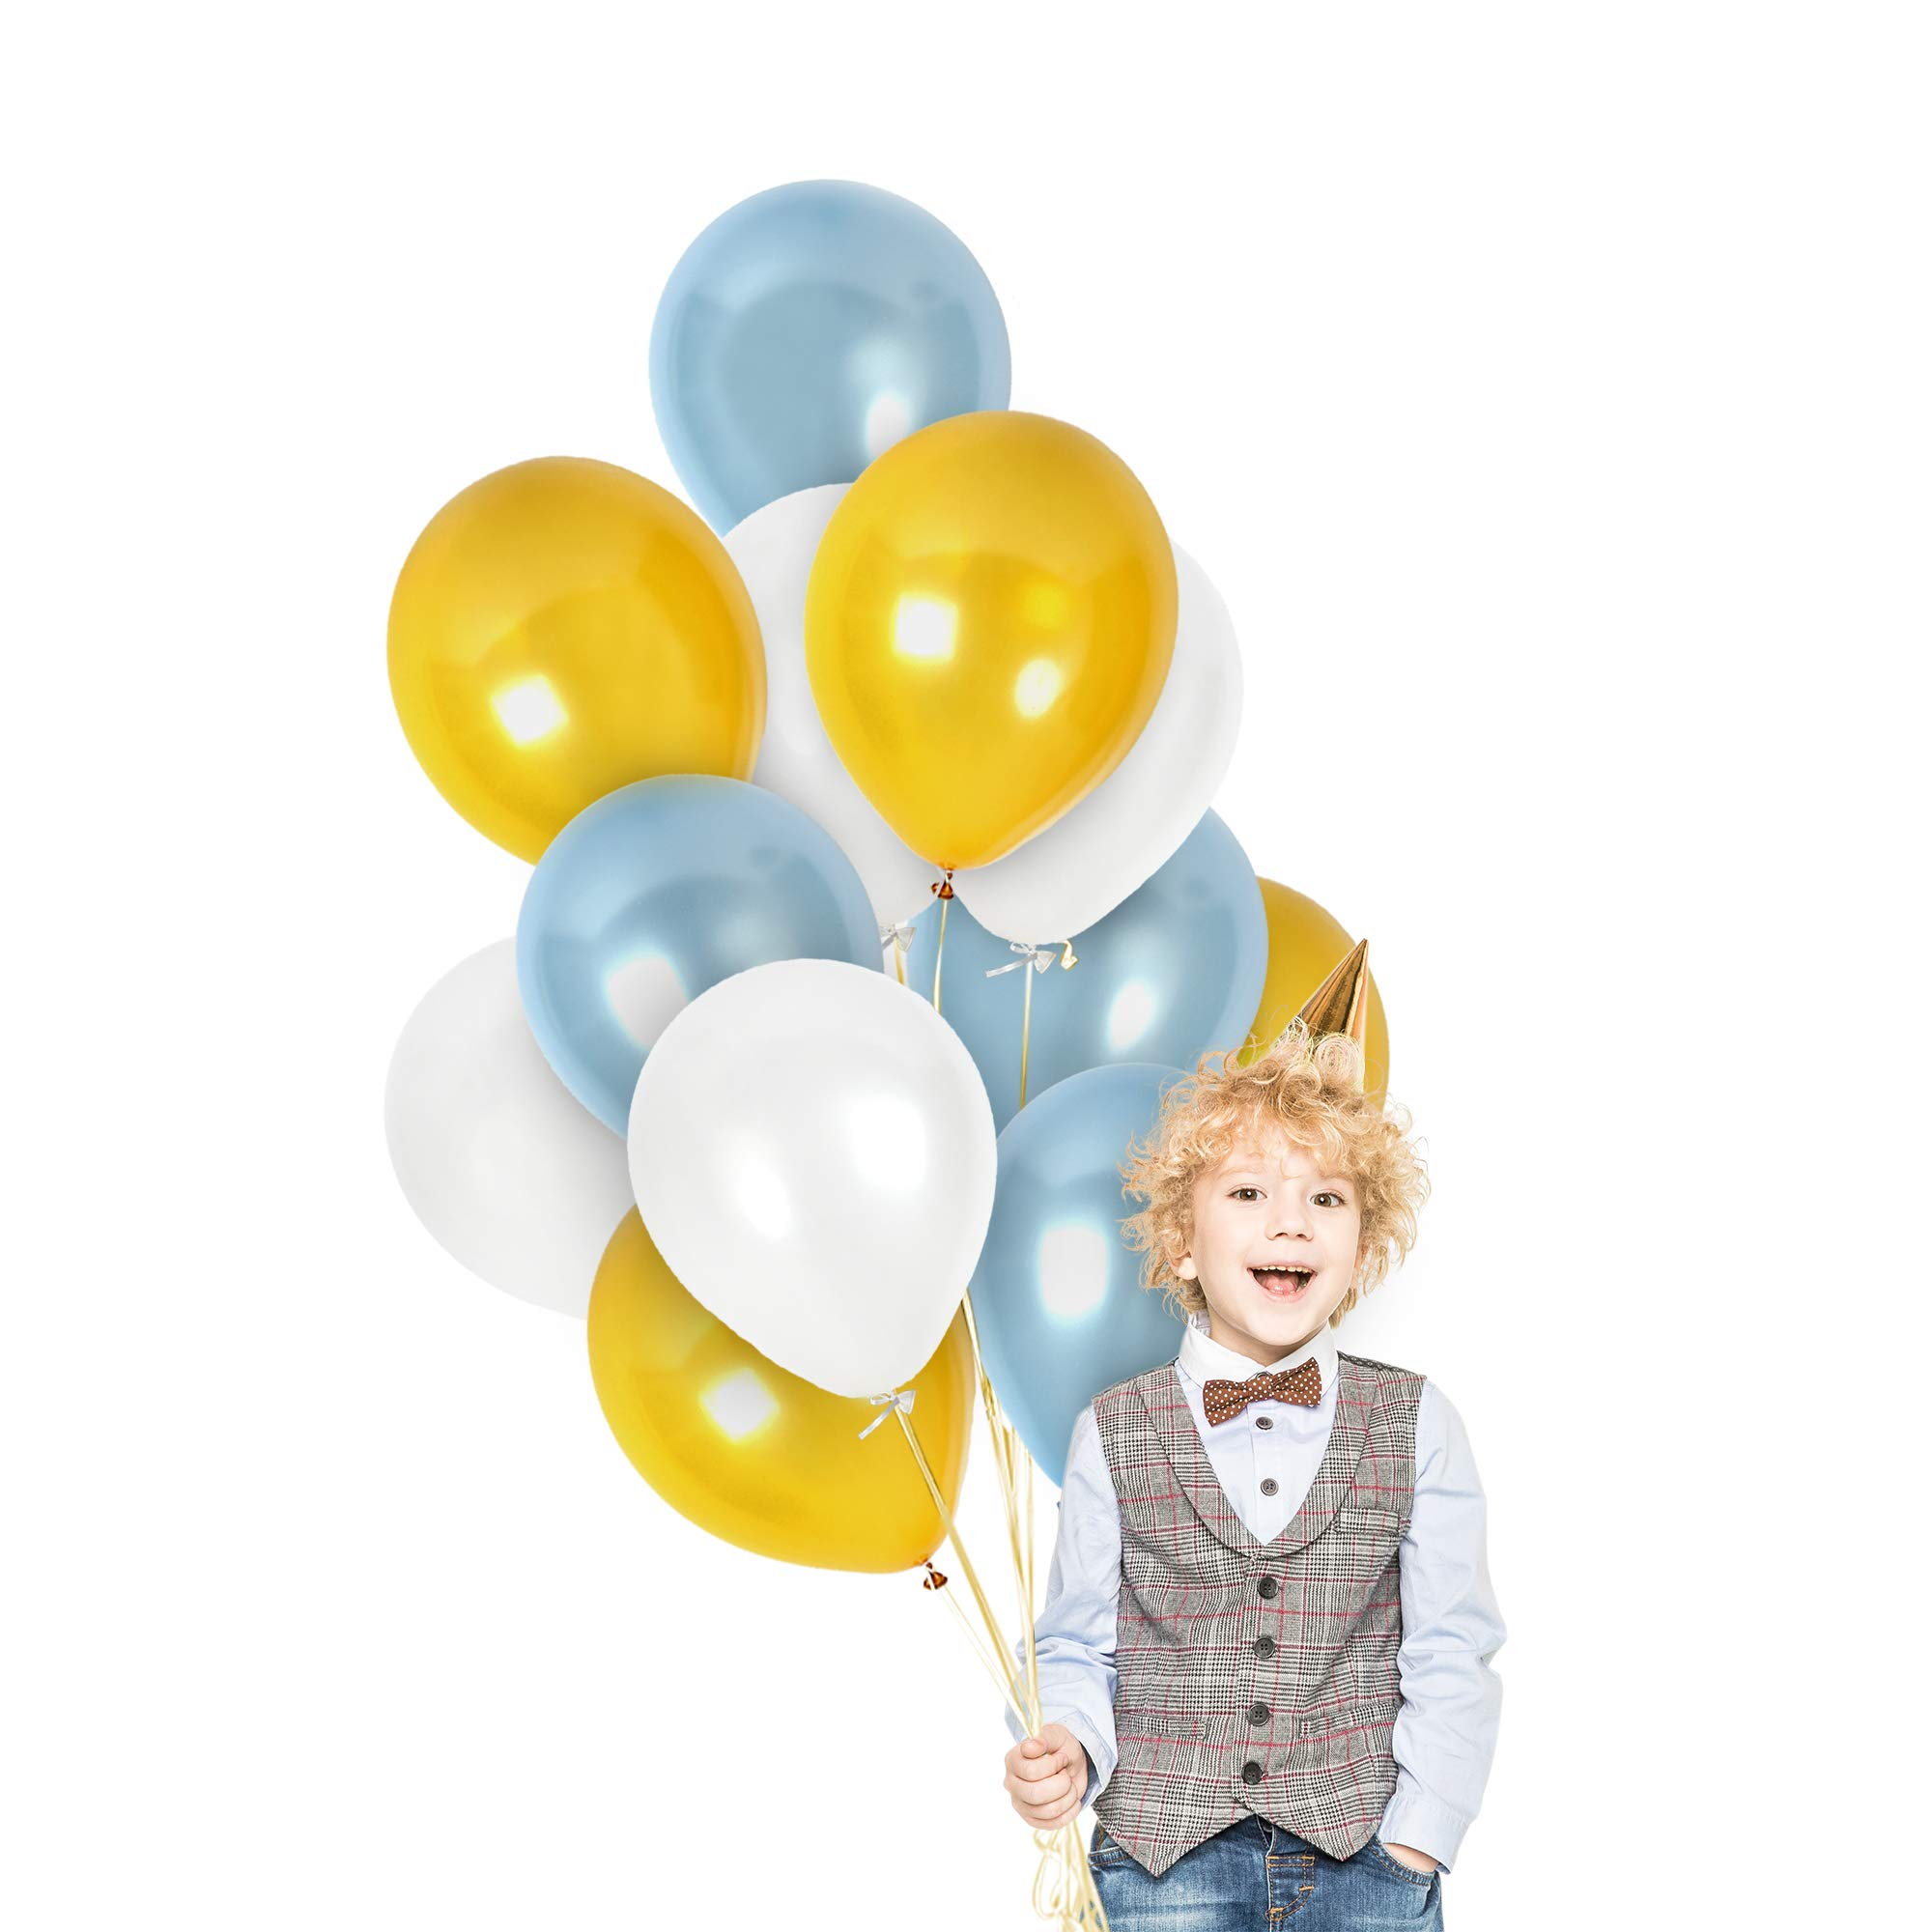 Metallic Gold White Light Blue Balloons Garland 100 Pack 12 Inch Latex Balloon Graduation Decorations For Birthday Baby Shower Gender Reveal Party Supplies